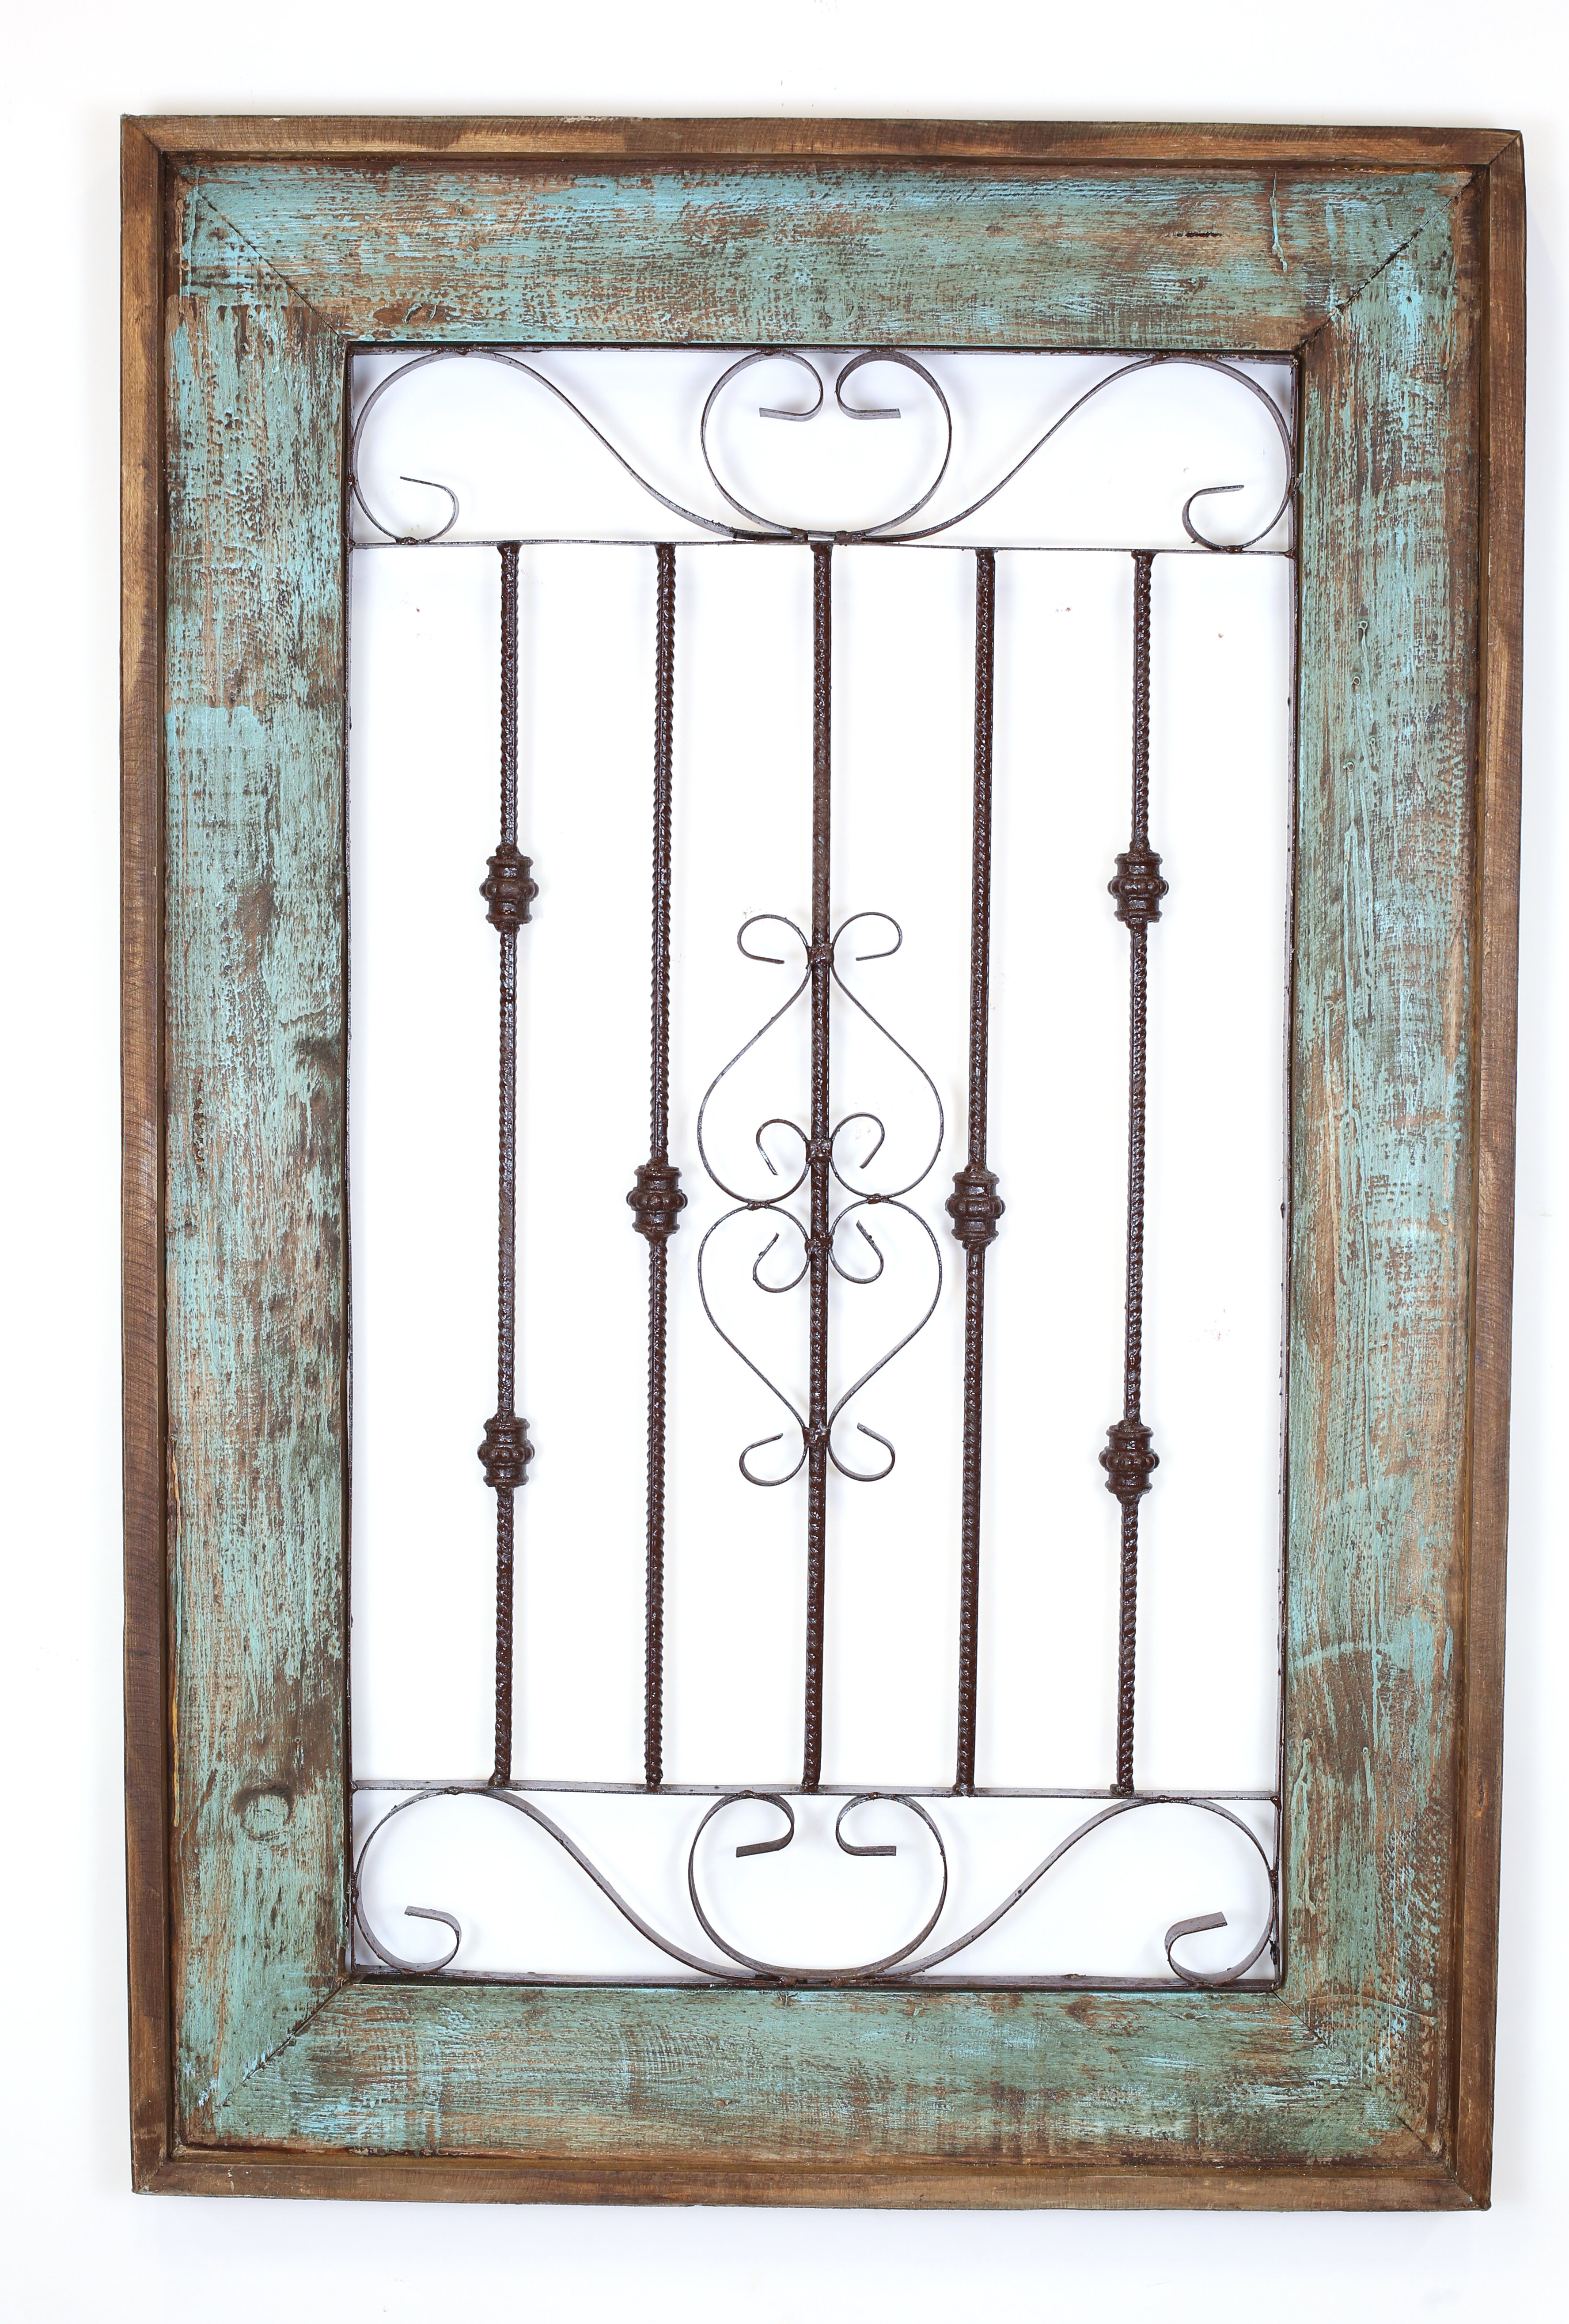 Wood And Metal Door Wall Decor Adorable Myamigosimports Spanish Large Architectural Window Wall Decor Design Inspiration